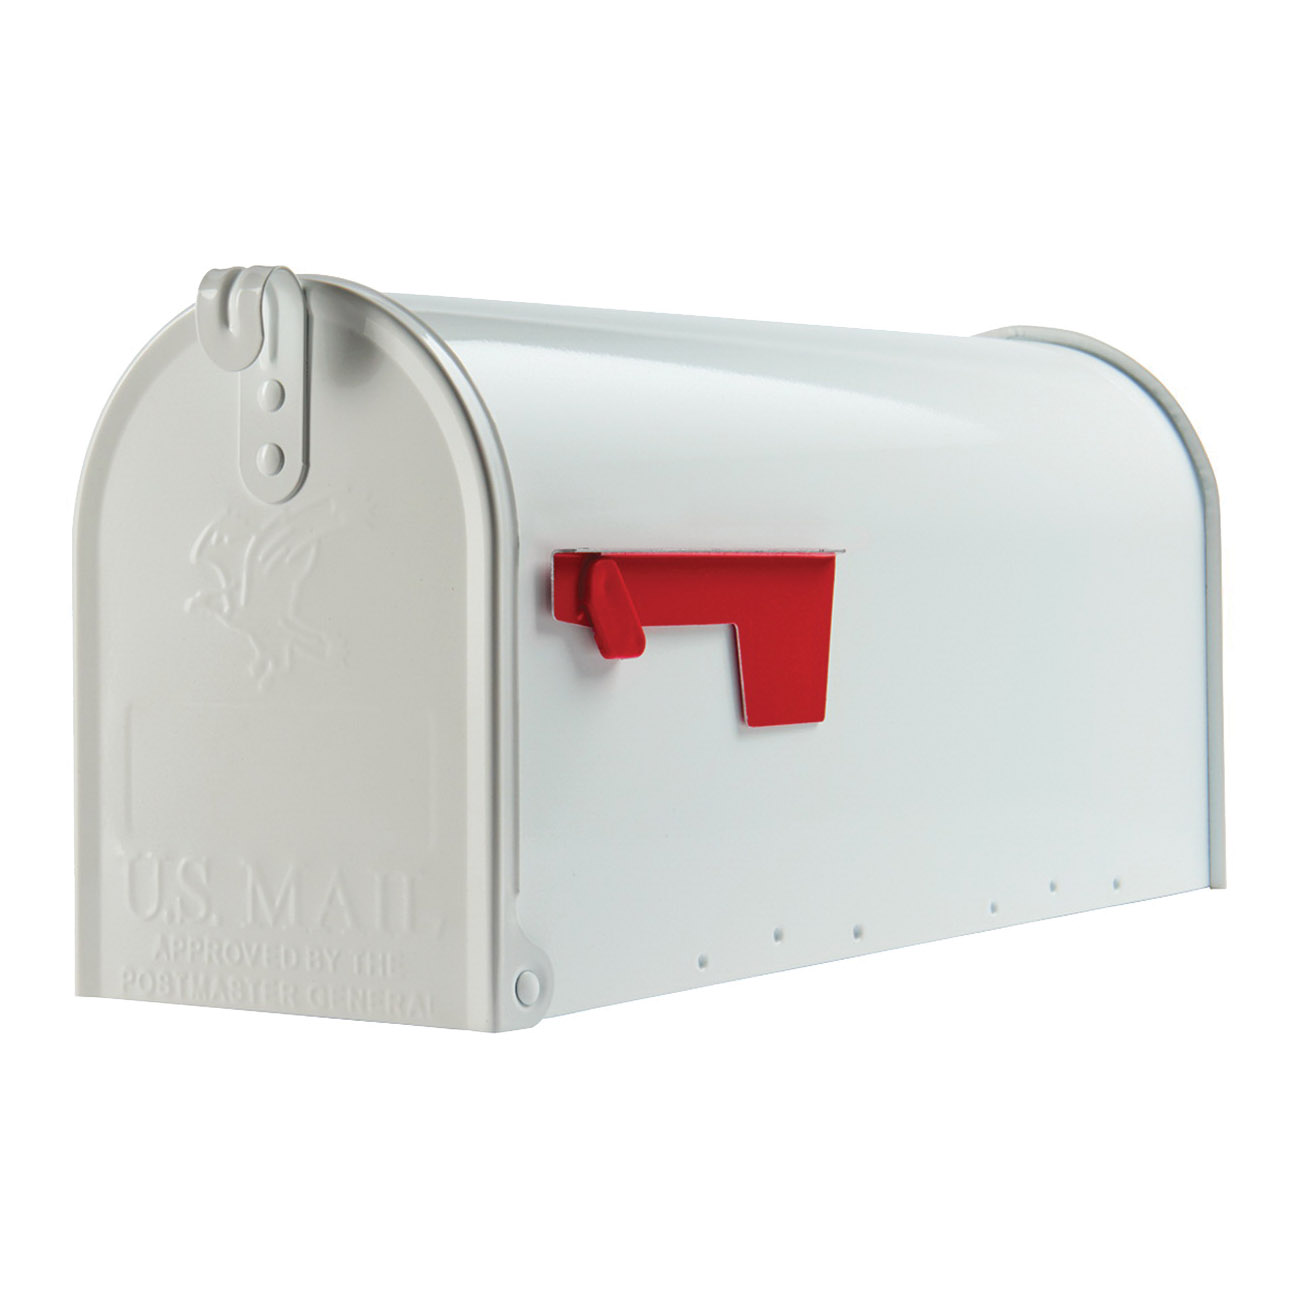 Picture of Gibraltar Mailboxes Elite E1100W00 Mailbox, 800 cu-in Capacity, Galvanized Steel, Powder-Coated, 6.9 in W, 8.9 in H